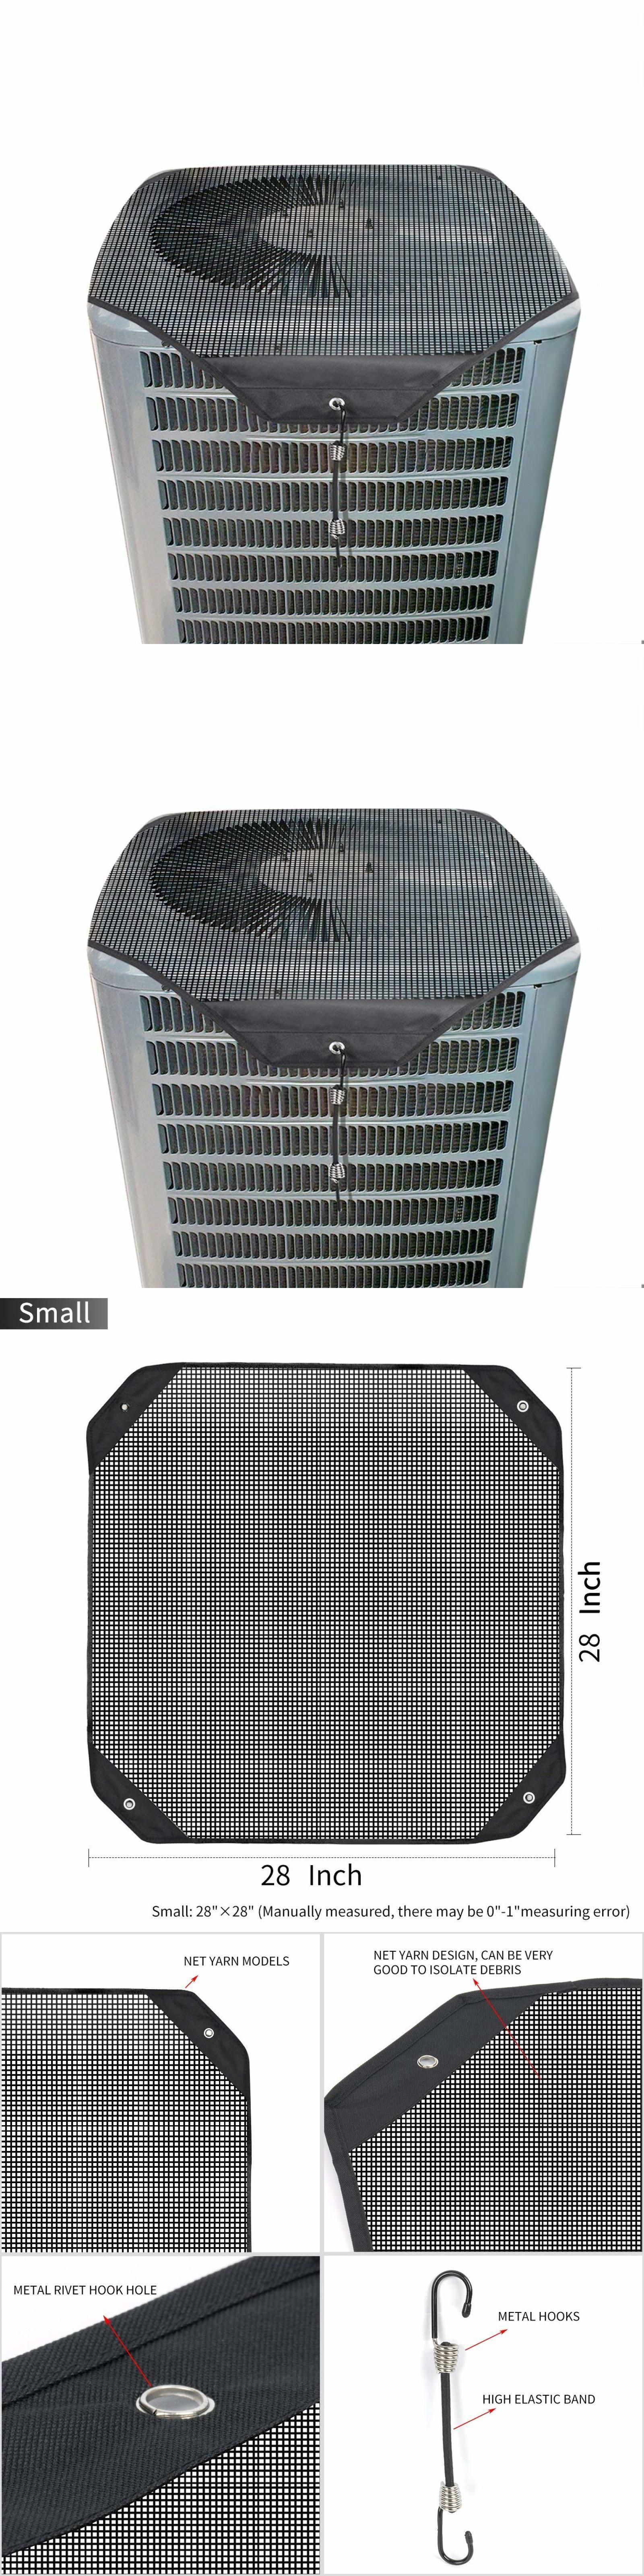 Central Air Conditioners 185108 Air Conditioner Leaf